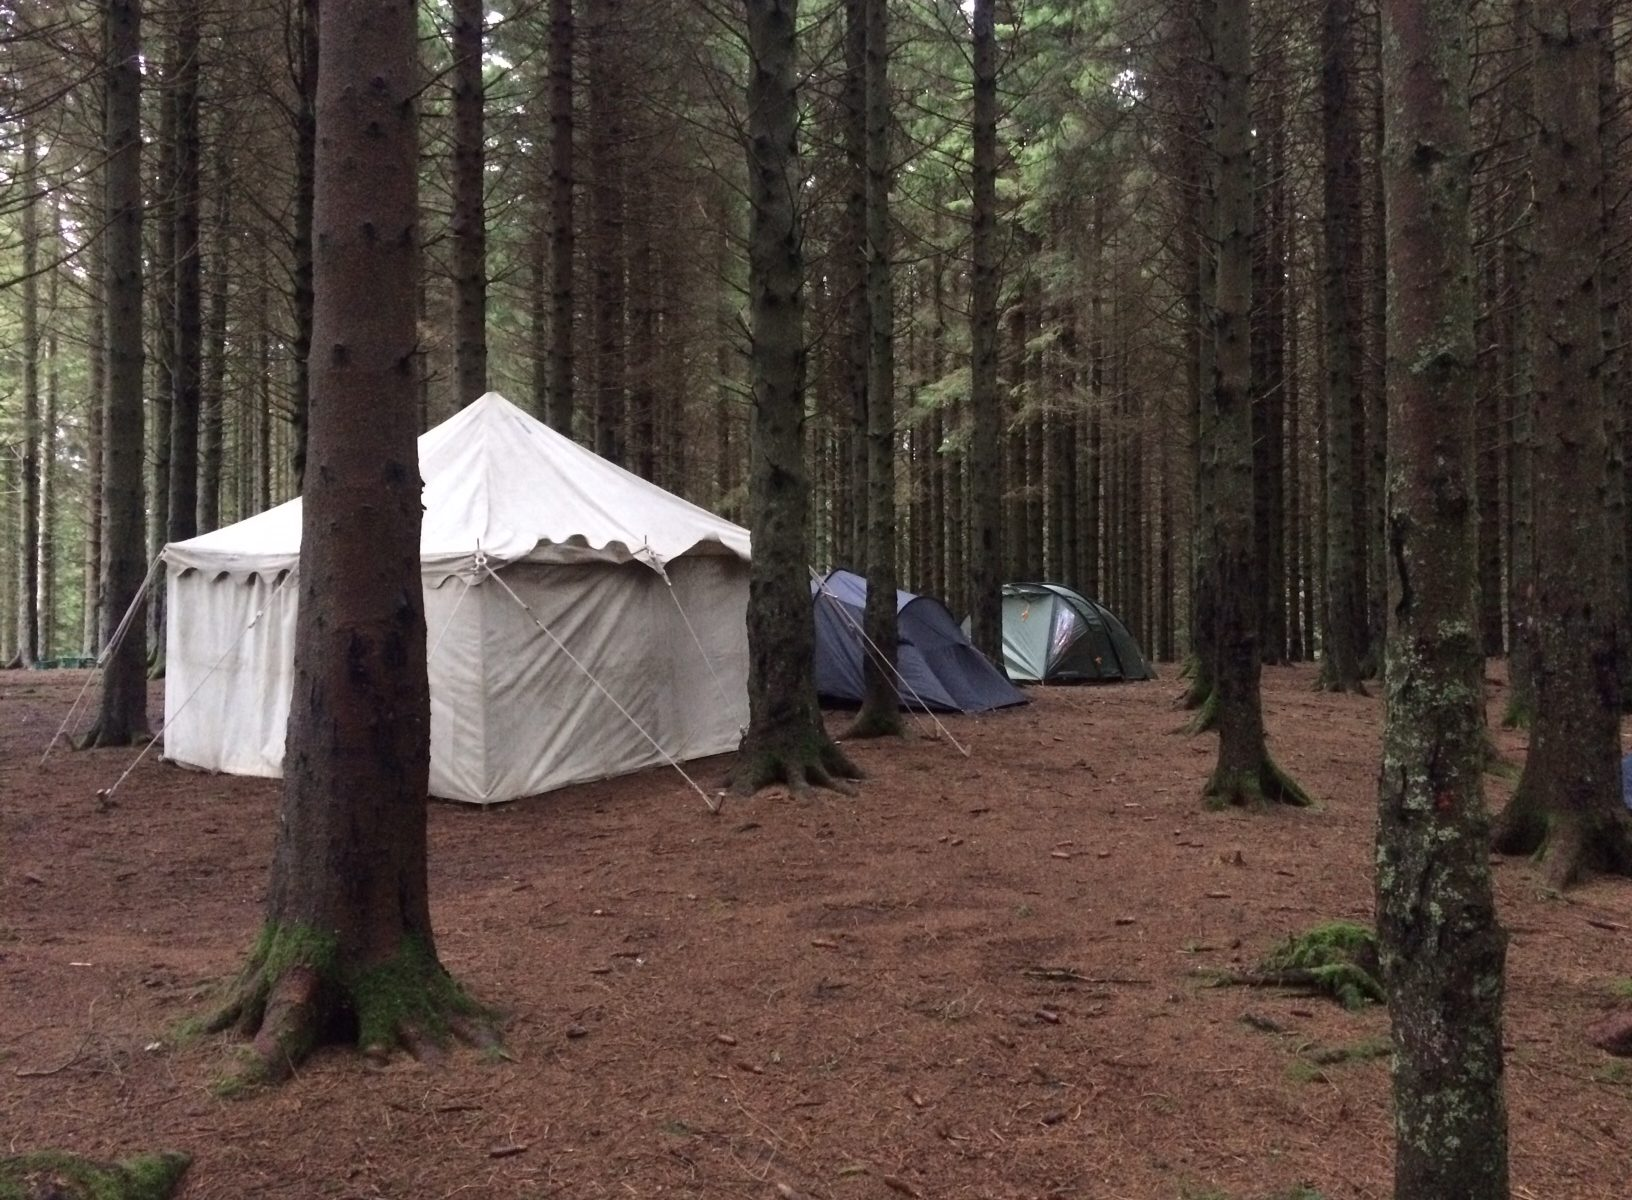 Tents in the trees